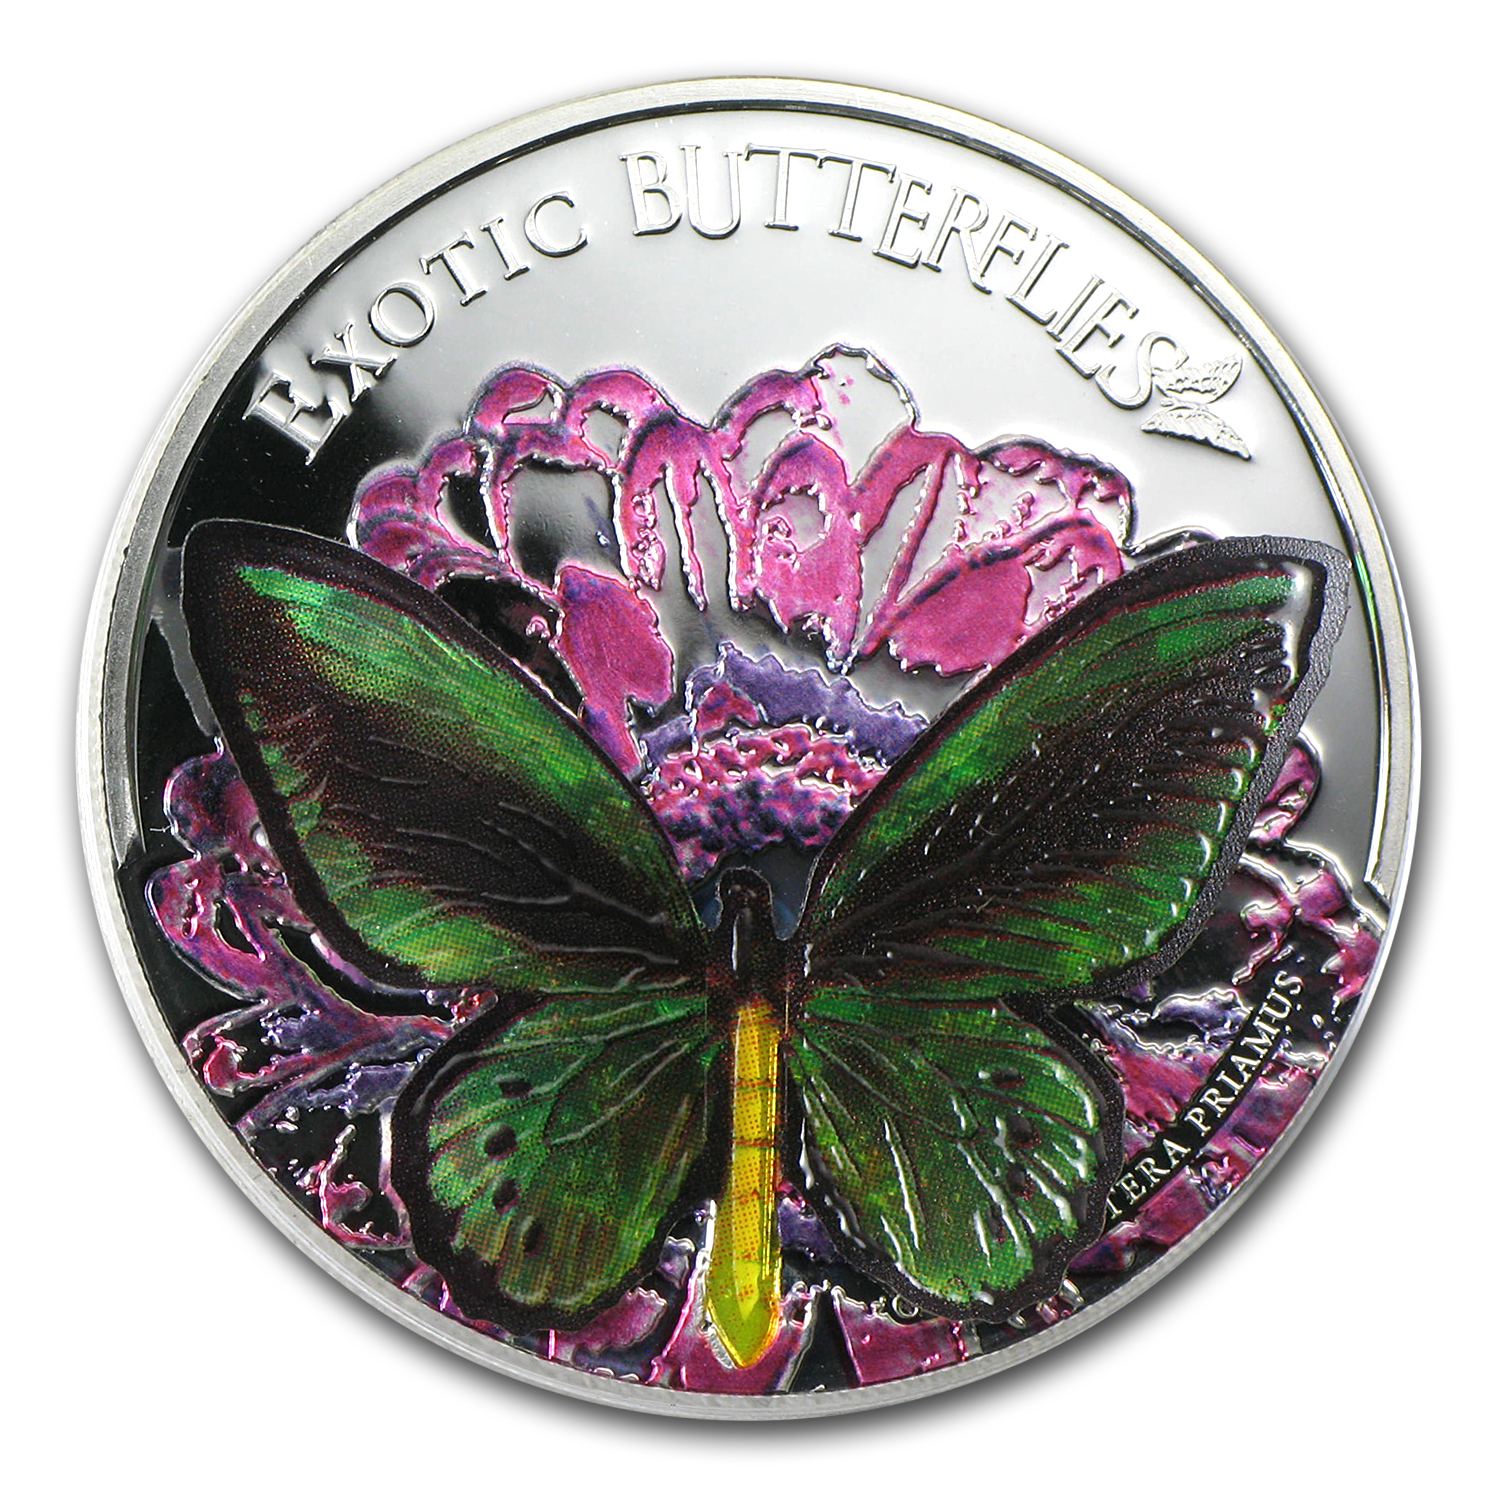 2012 Tokelau Proof Silver 3D Exotic Butterflies